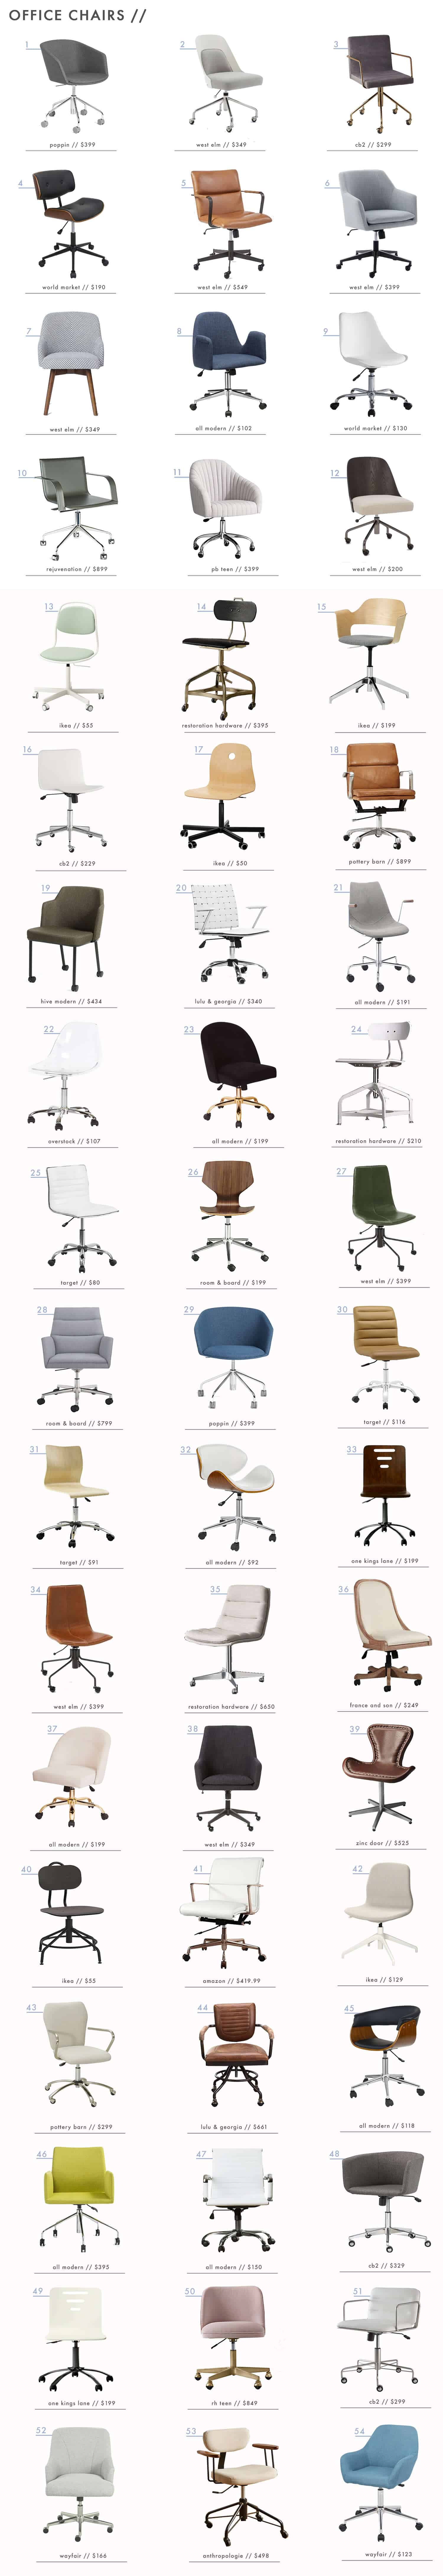 Emliy Henderson Office Chairs Roundup Resized 2